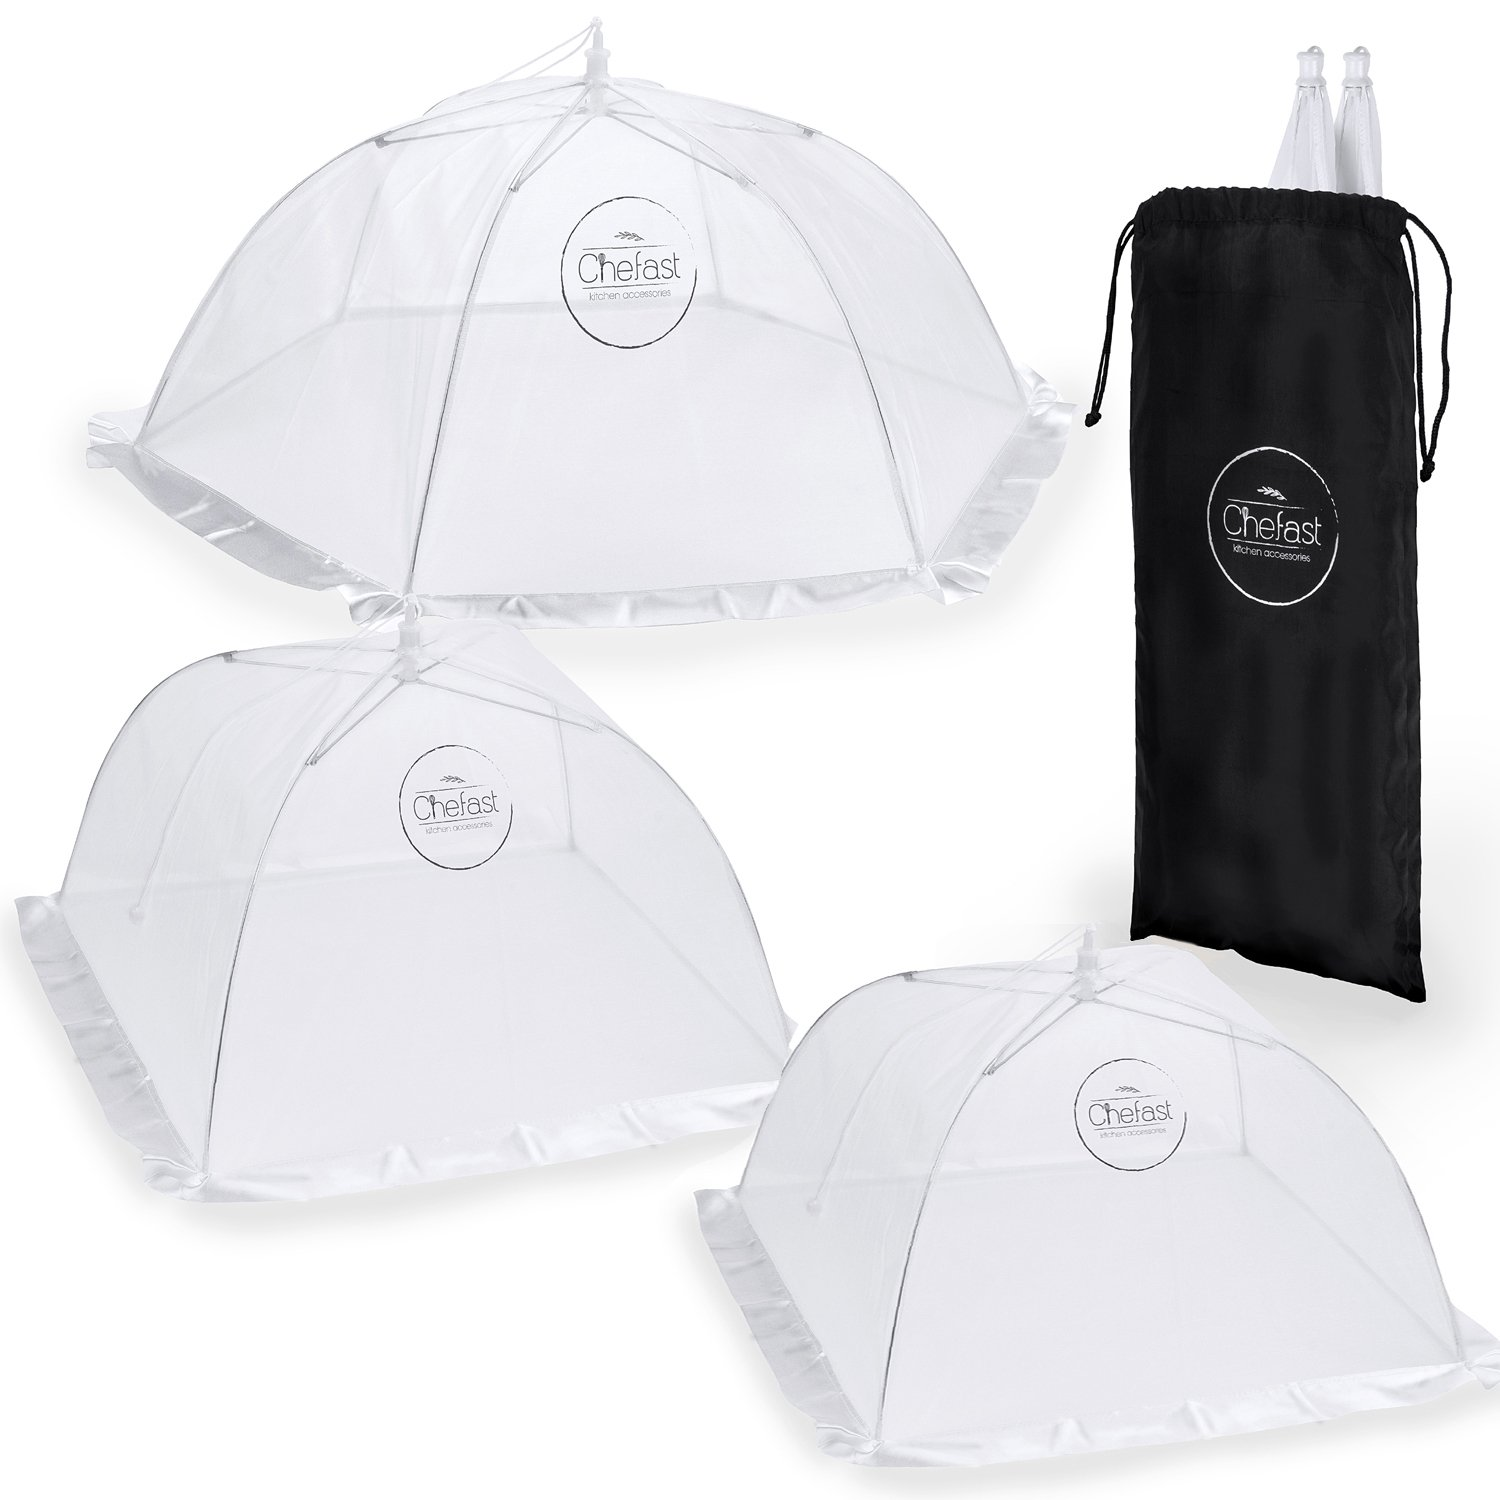 Chefast Food Cover Tents (5 Pack) - Combo Set of Pop Up Mesh Covers in 5 Sizes and a Reusable Carry Bag - Umbrella Screens for Picnics, BBQ, Outdoors and More